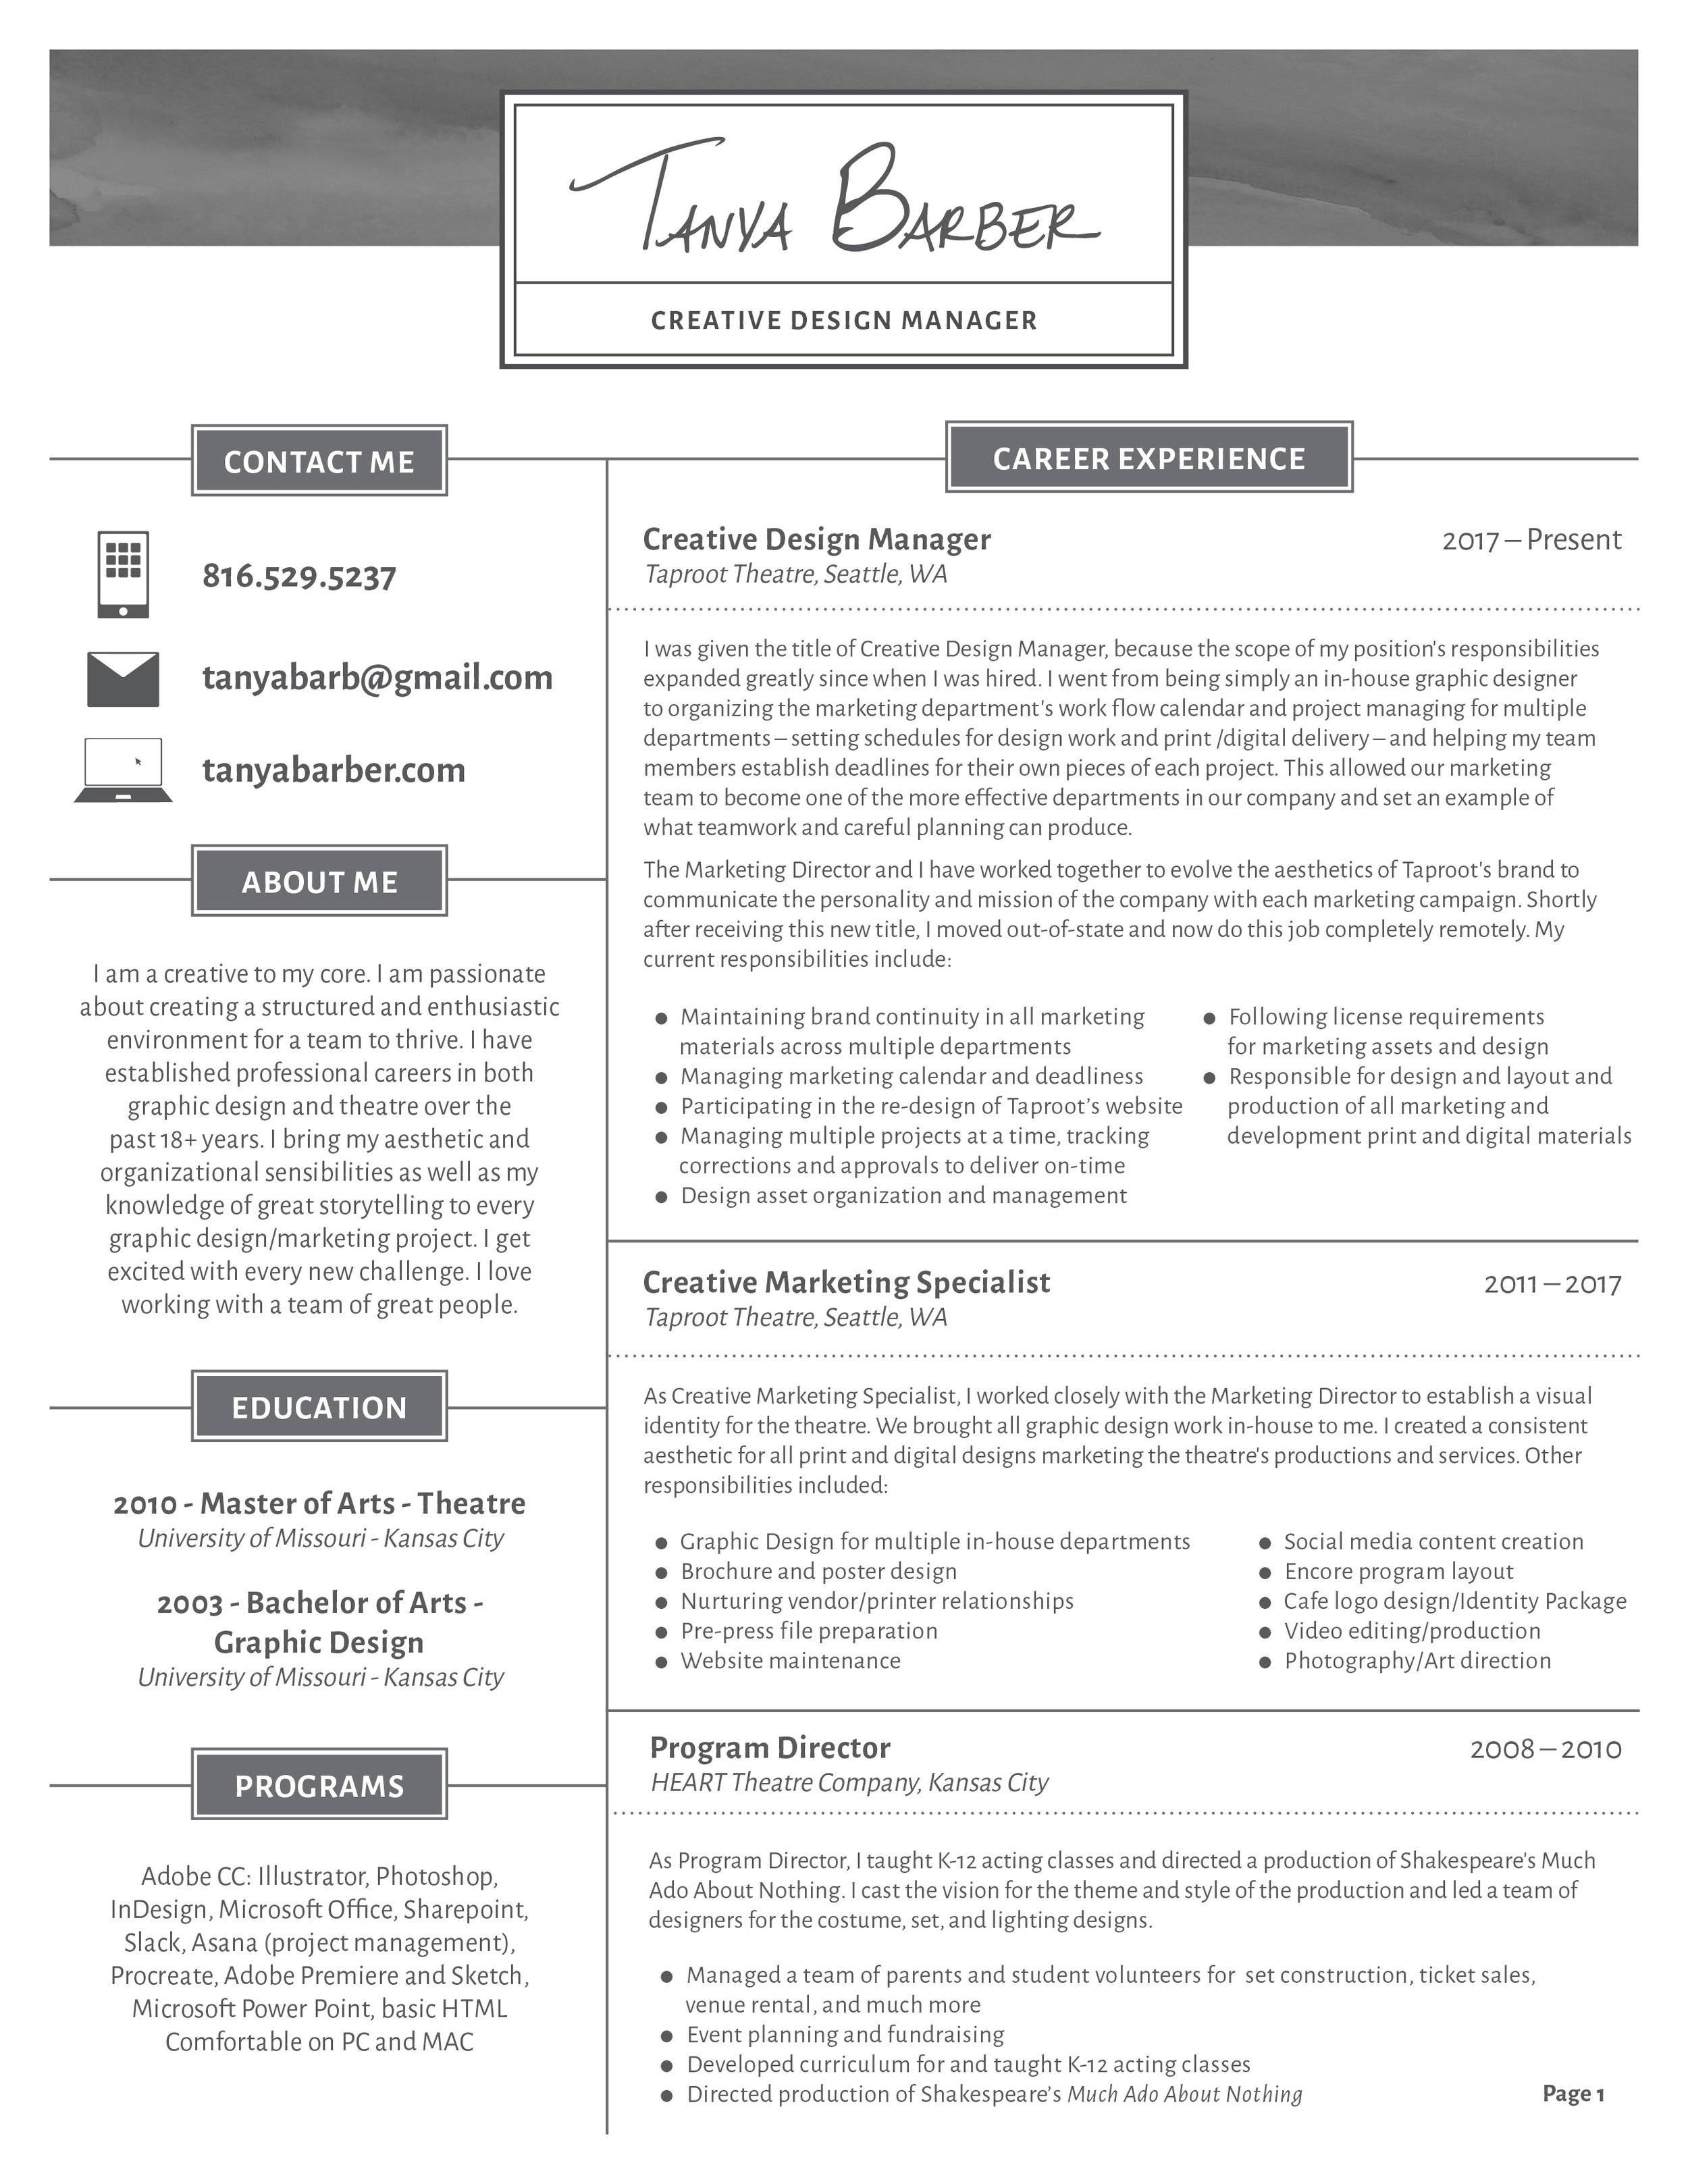 TanyaBarber_Resume_June2019.jpg